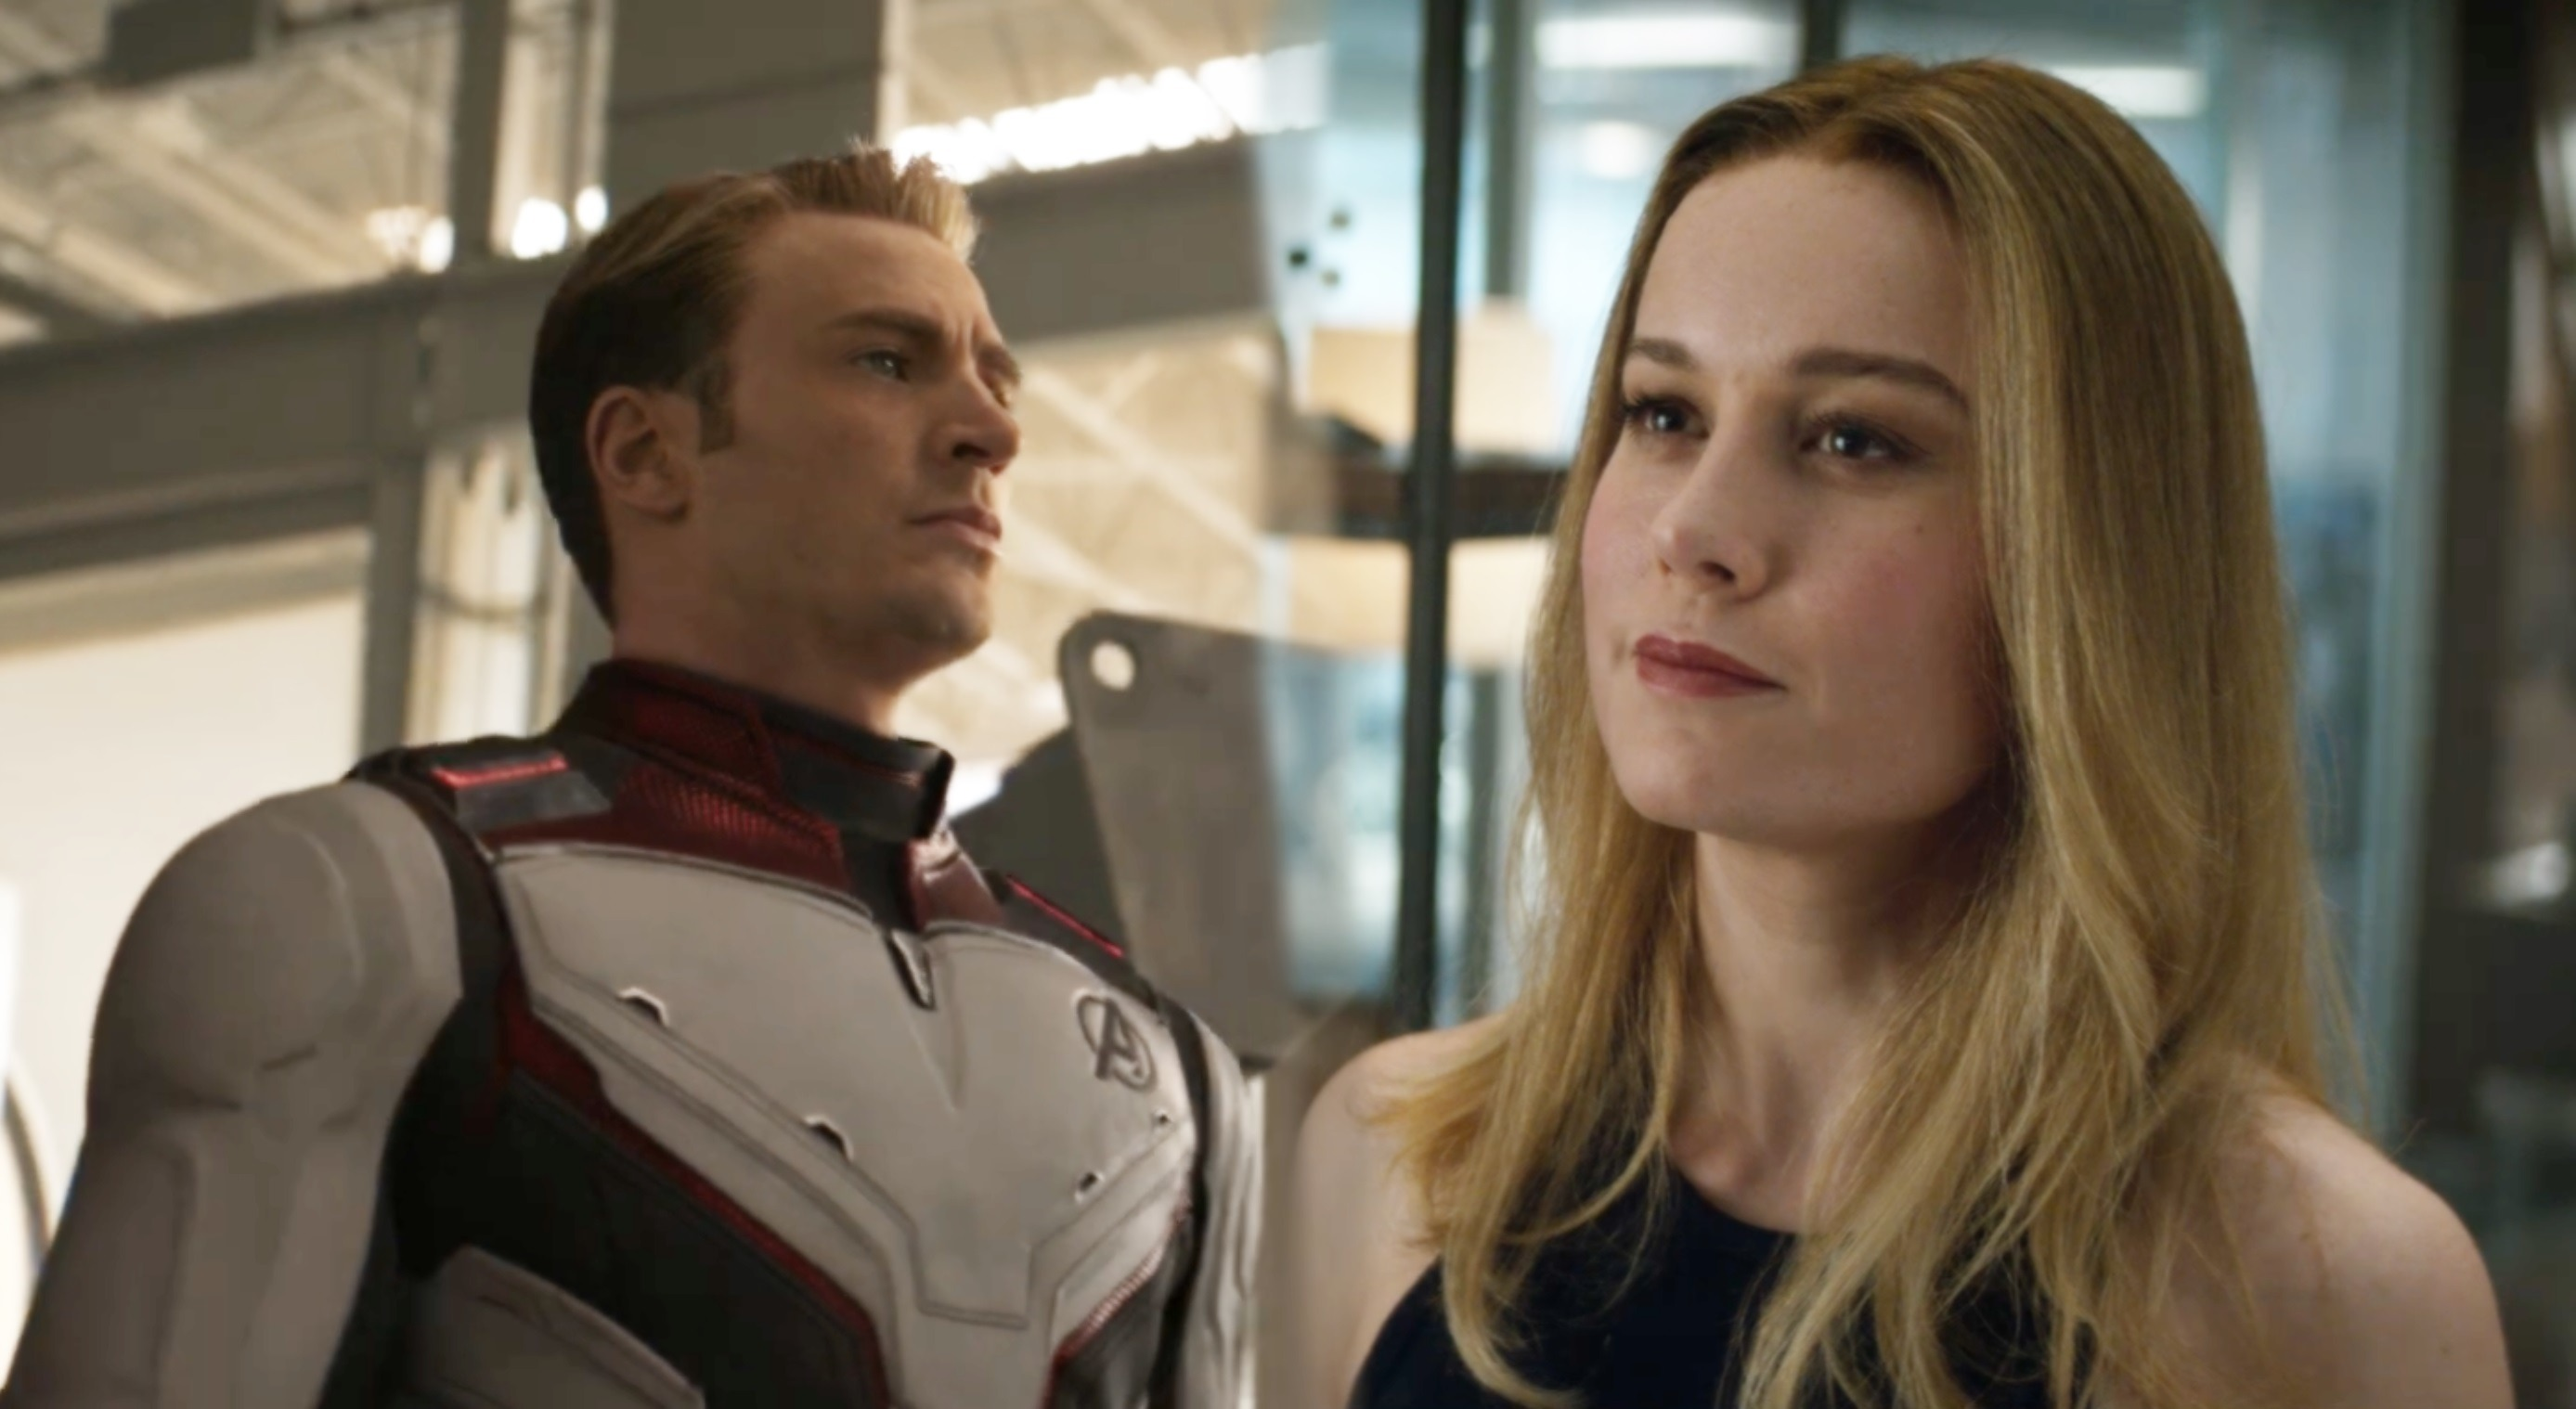 Avengers-Endgame-official-trailer-2-hints-photo